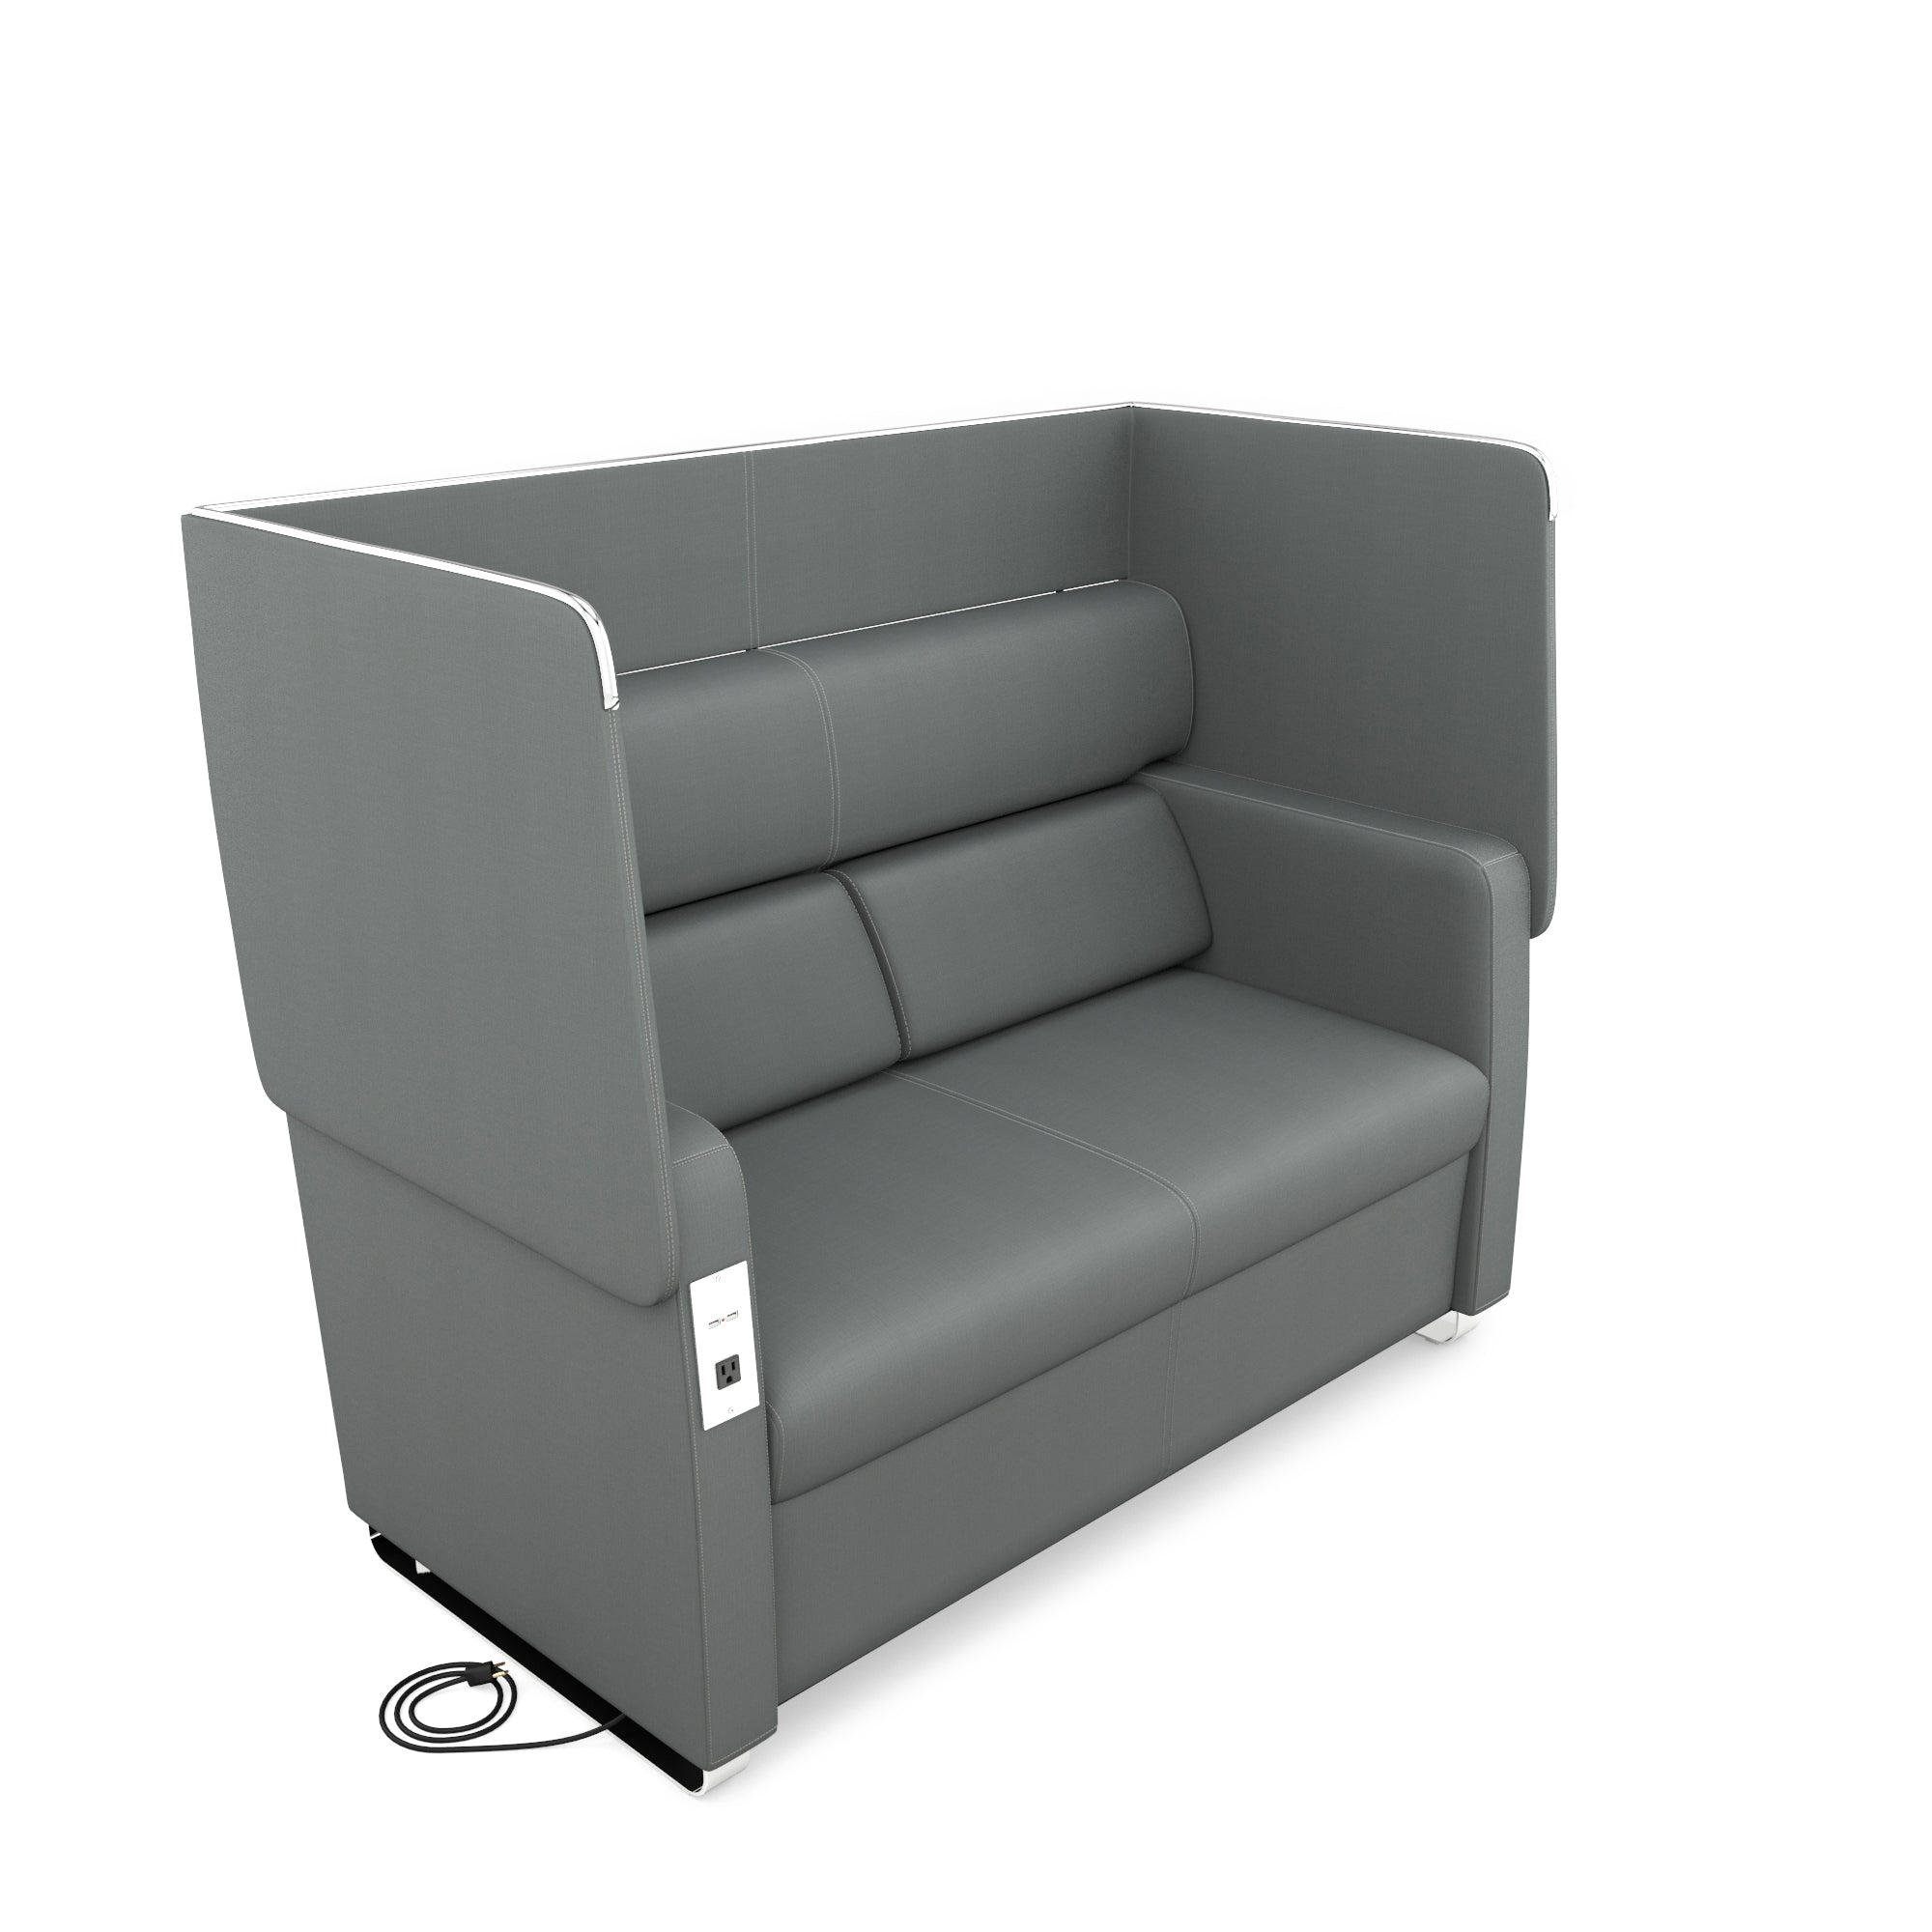 Ofminc Model 2202 Morph Series Soft Seating Sofa